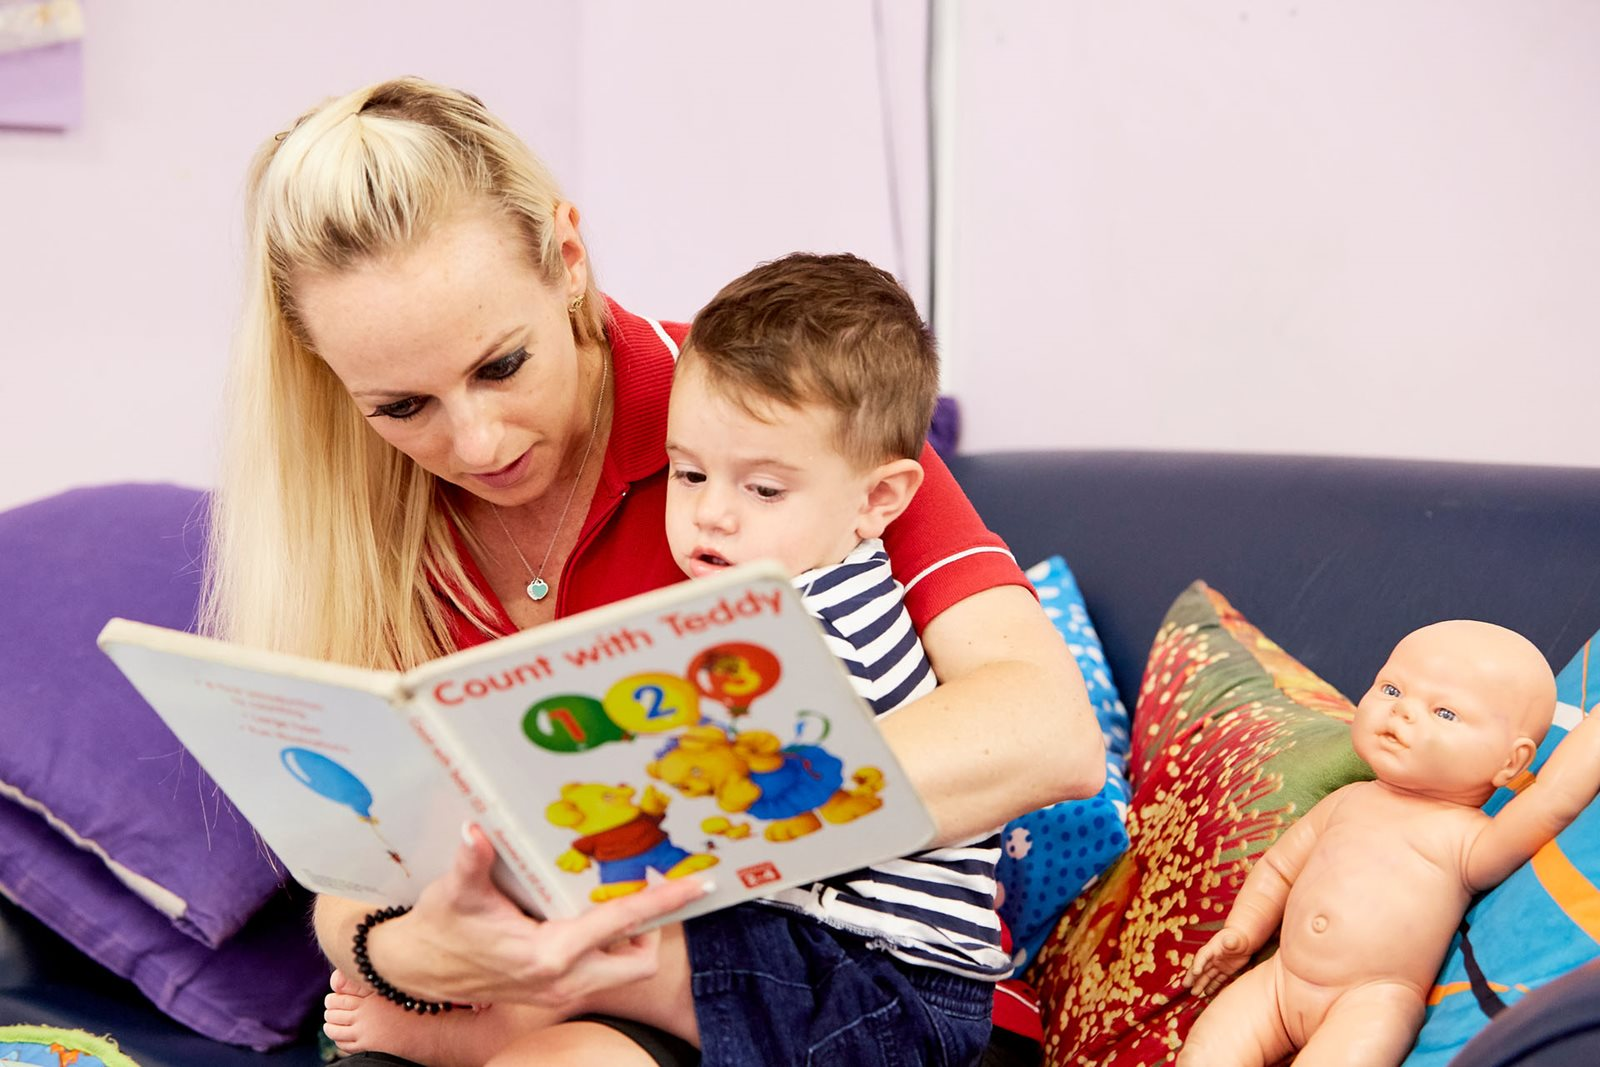 Child care educator reading to child in classroom